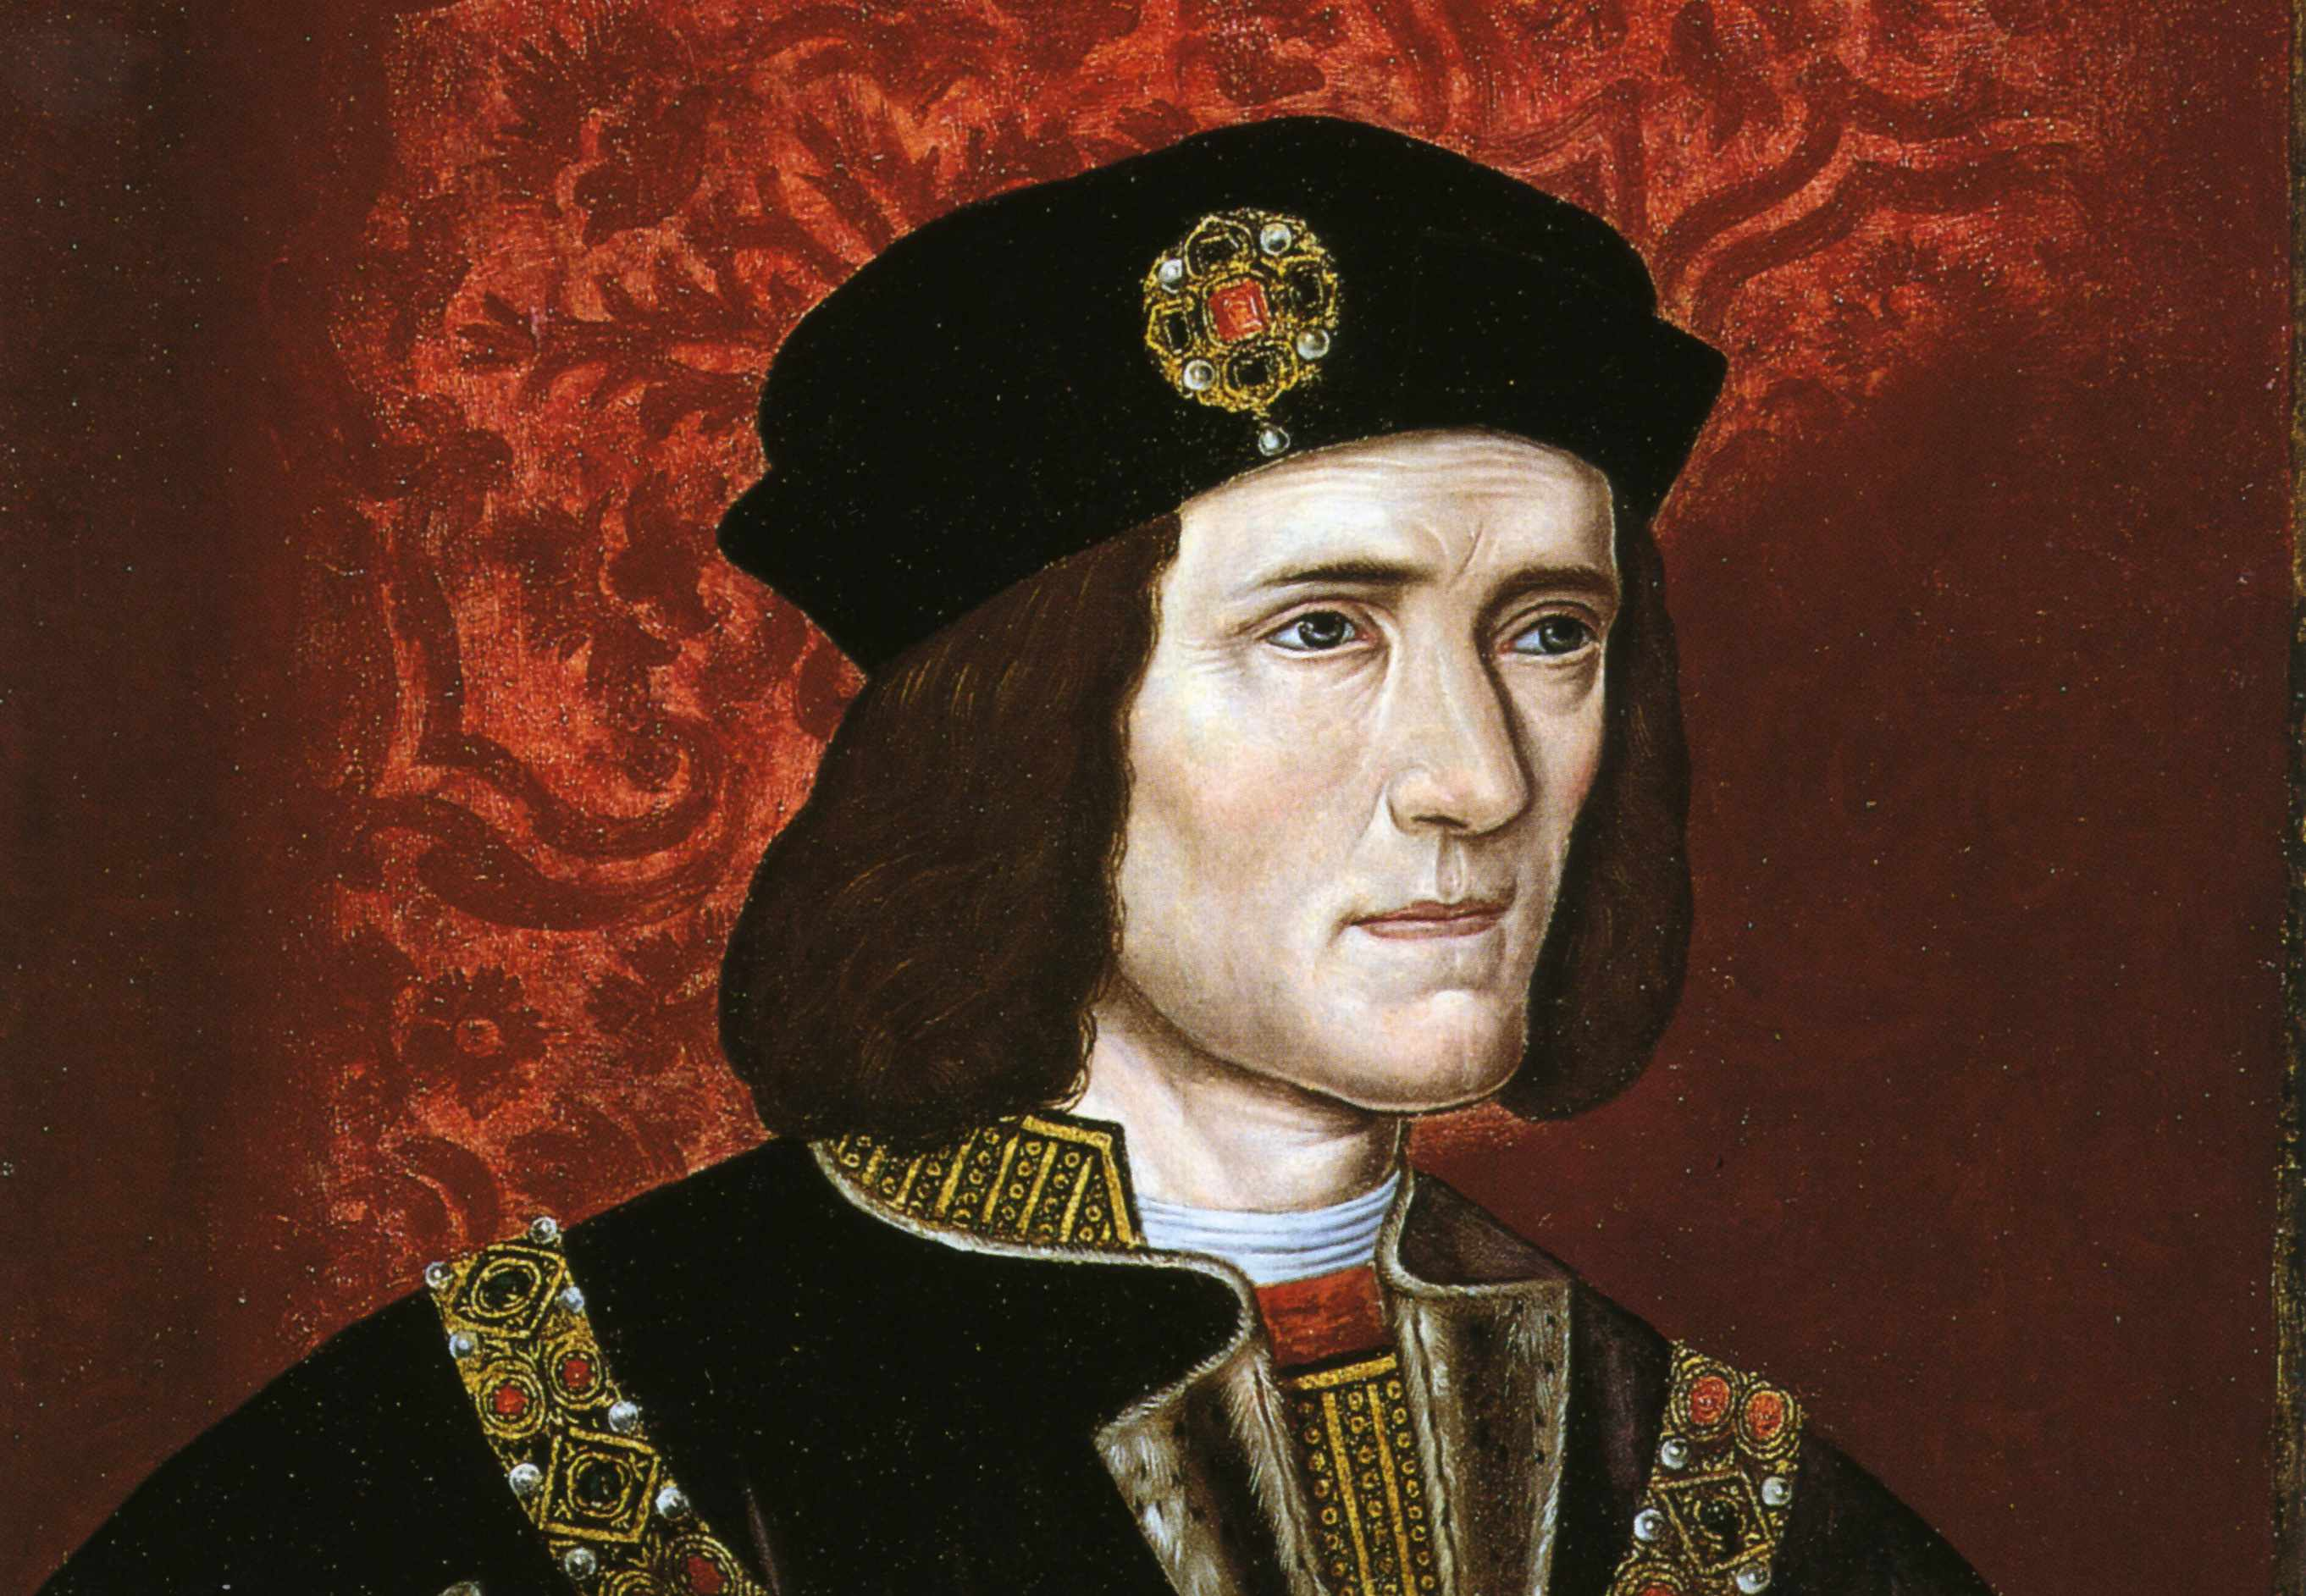 Richard III: Ruthless tyrant or maligned monarch? © Wikimedia Commons